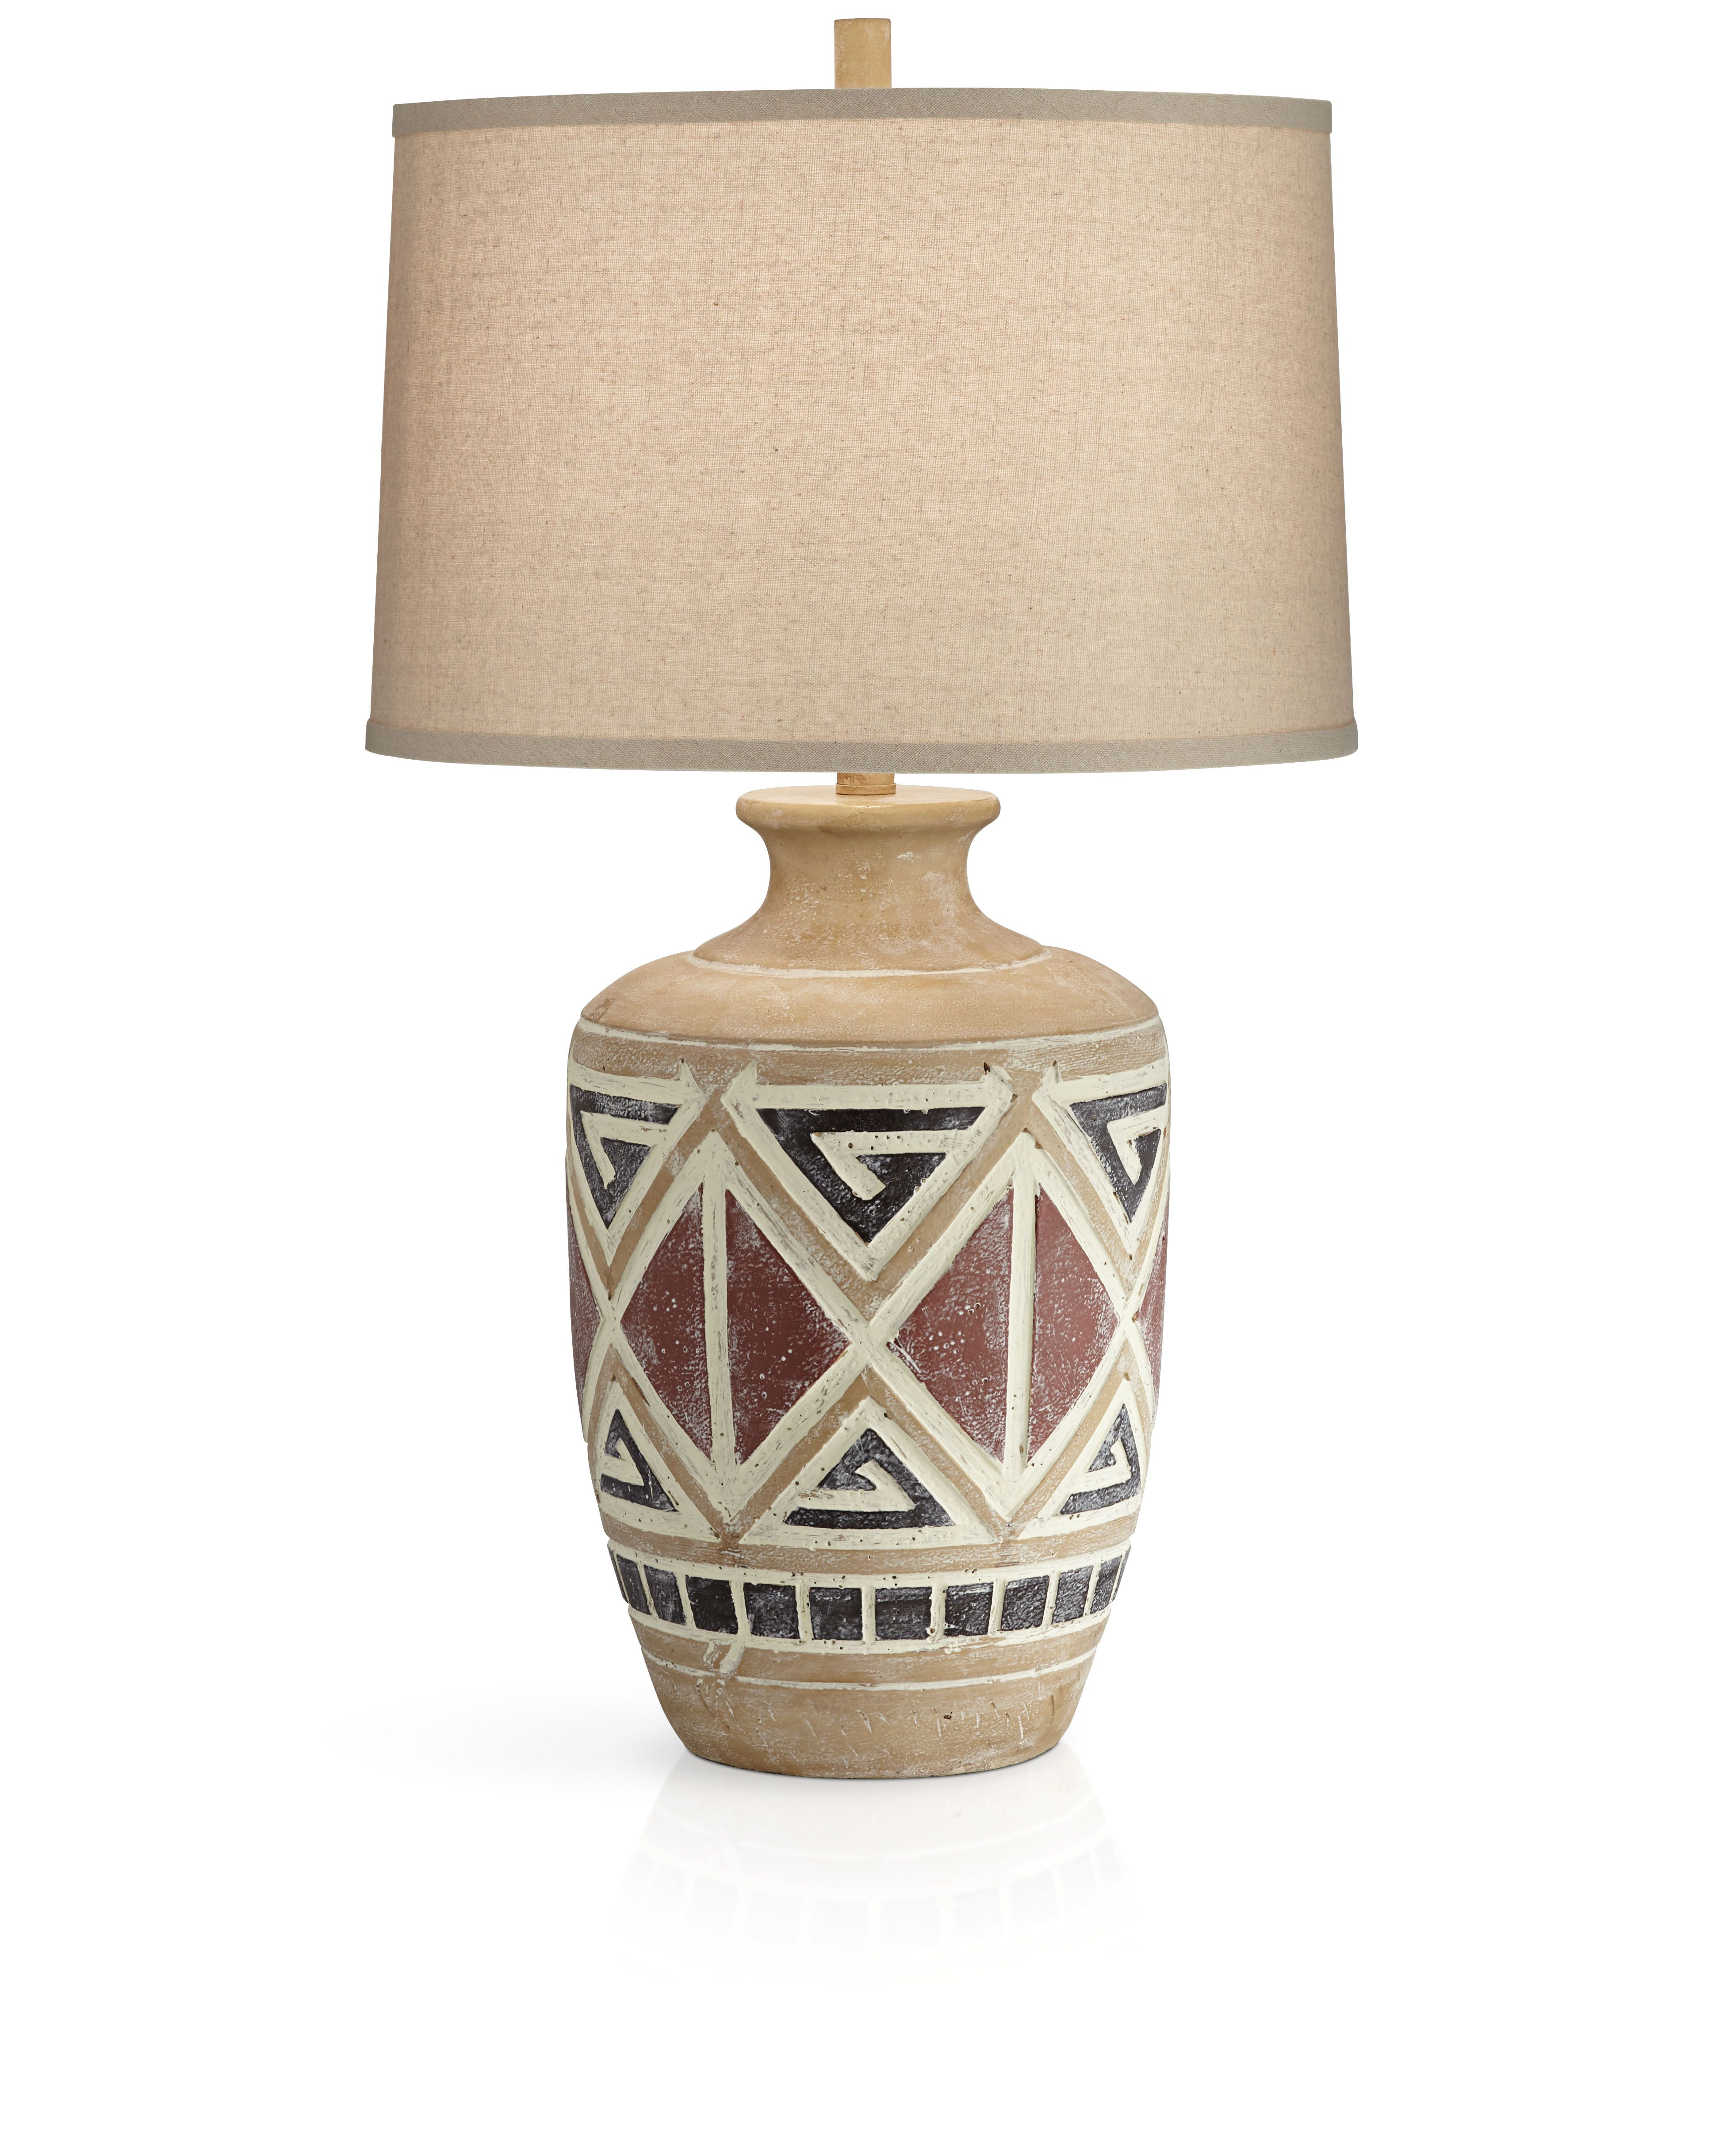 Casual and southwest inspired table lamp.  #casual #casualstyle #casualdecor #casualhome #southwest #southweststyle #lighting #lamps #patterns #tribal #home #homedecor #homedecorating #livingroom #livingroomdecor #bedroom #bedroomdecor #interiordesign #interiorinspiration